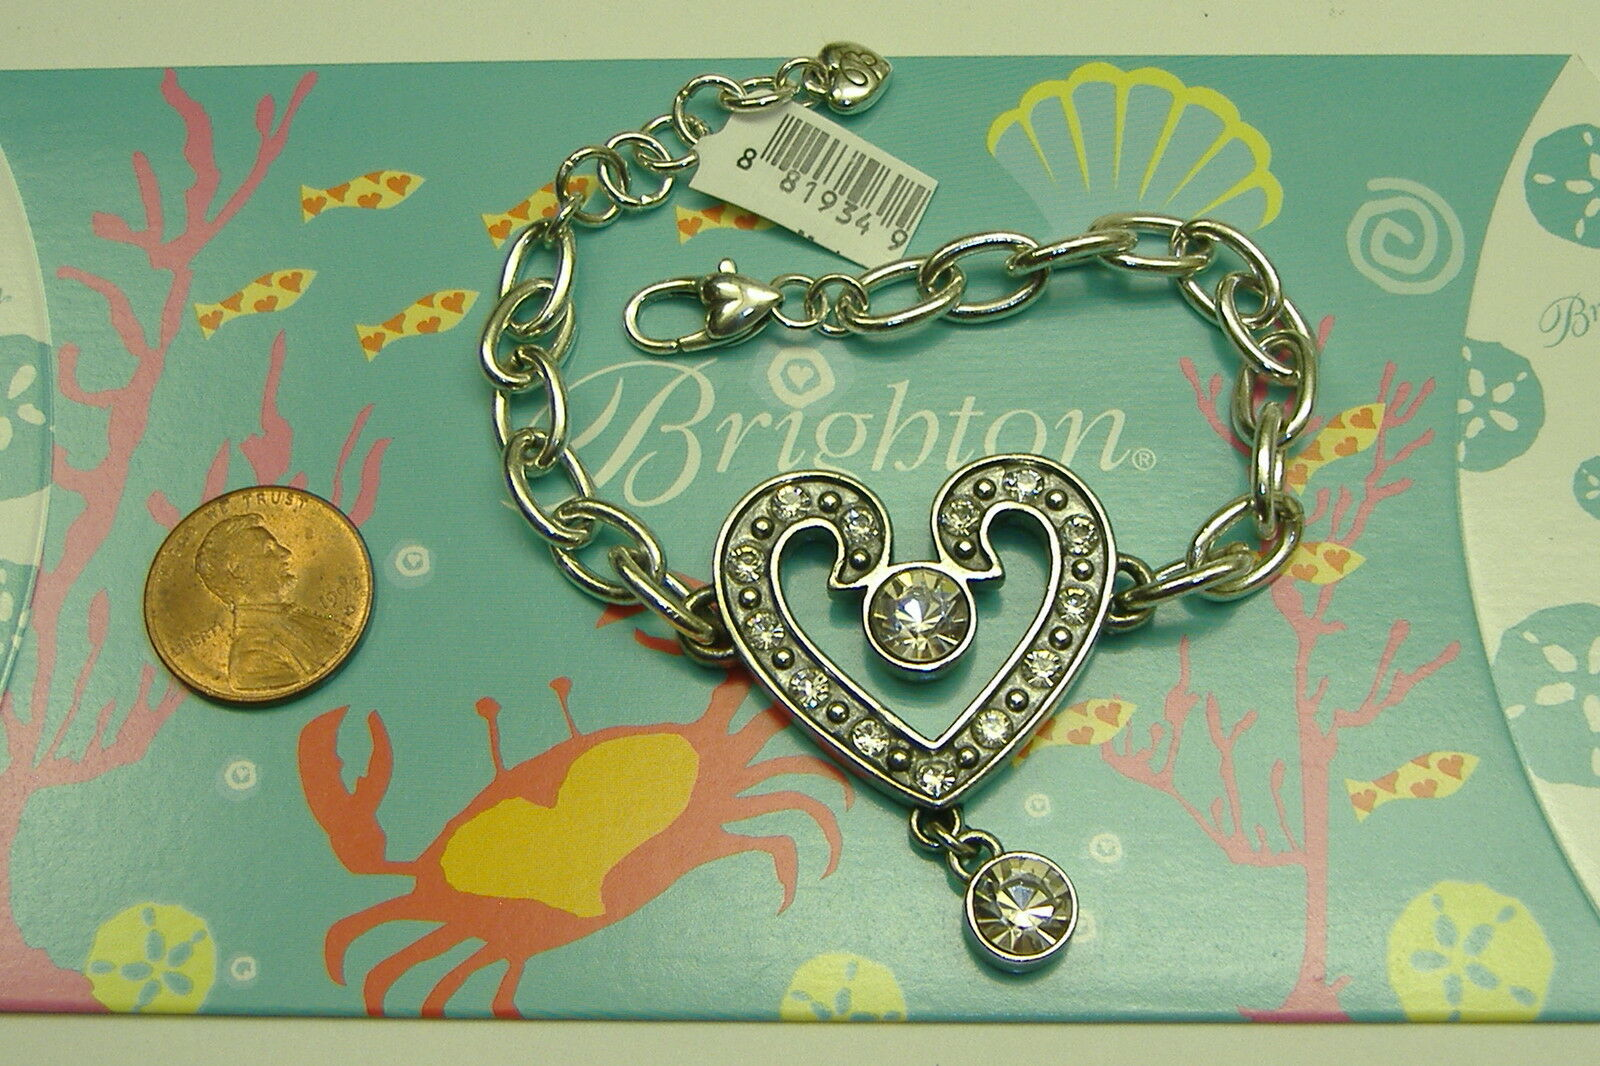 Brighton  classic  crystal heart charm bracelet NWT 8.5-9.5 inches adjustable